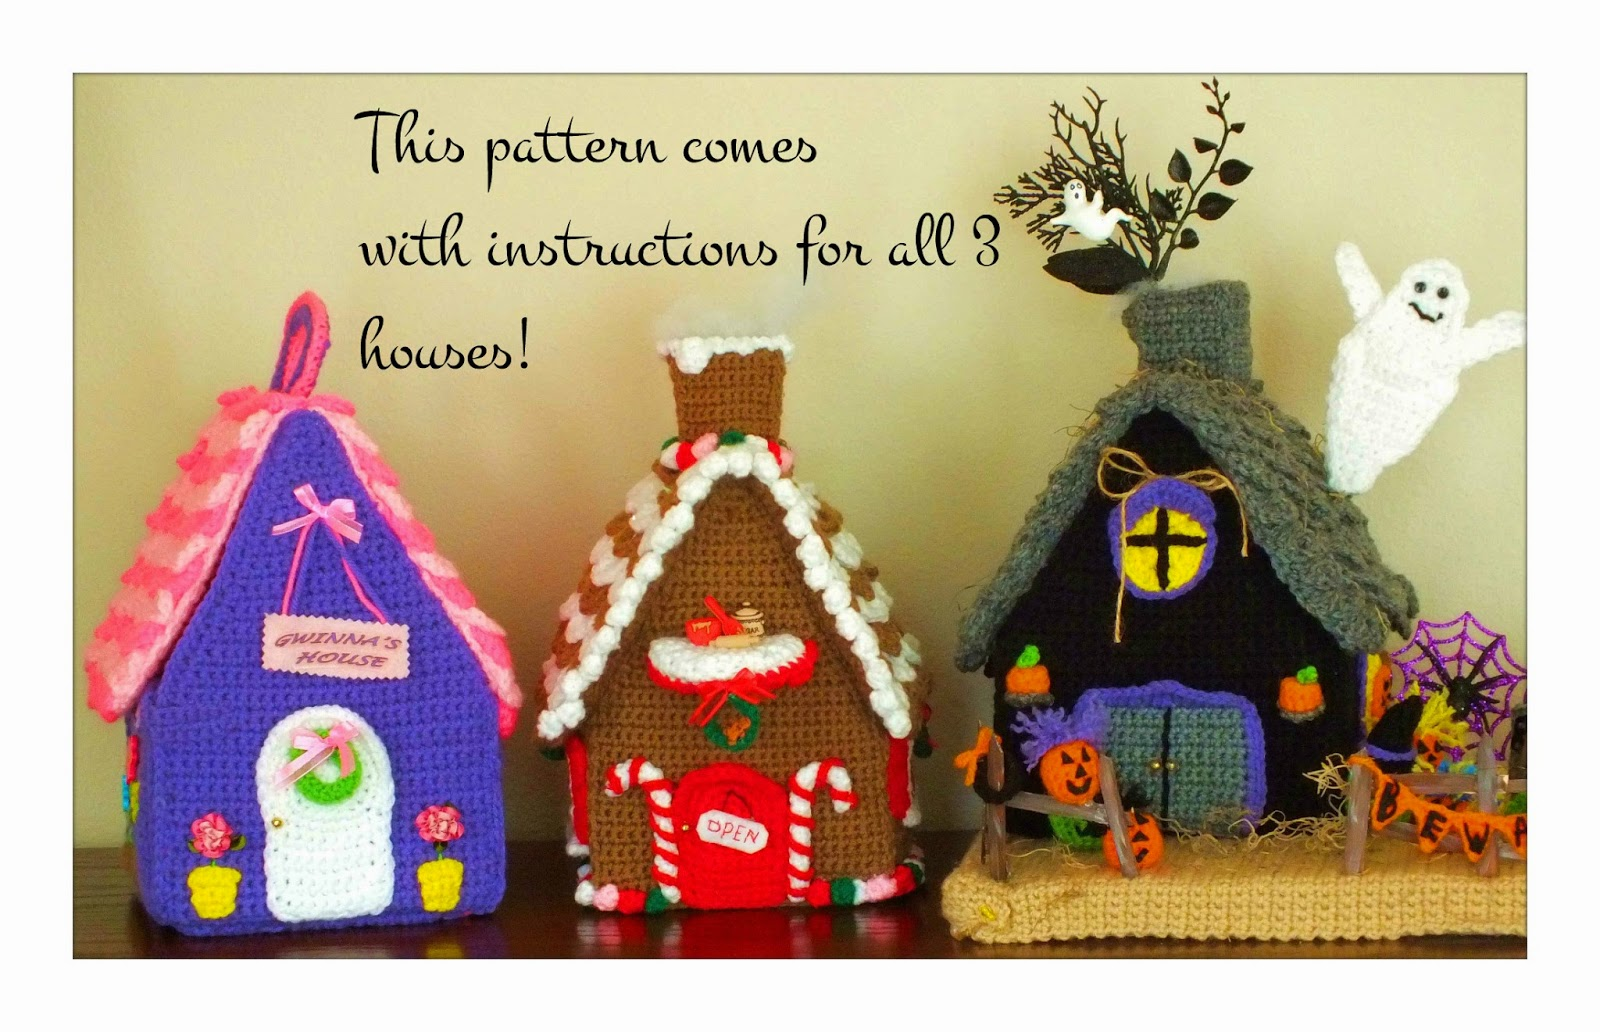 Connies Portable Purple Doll House© Christmas Gingerbread House© Halloween Haunted House Patterns©